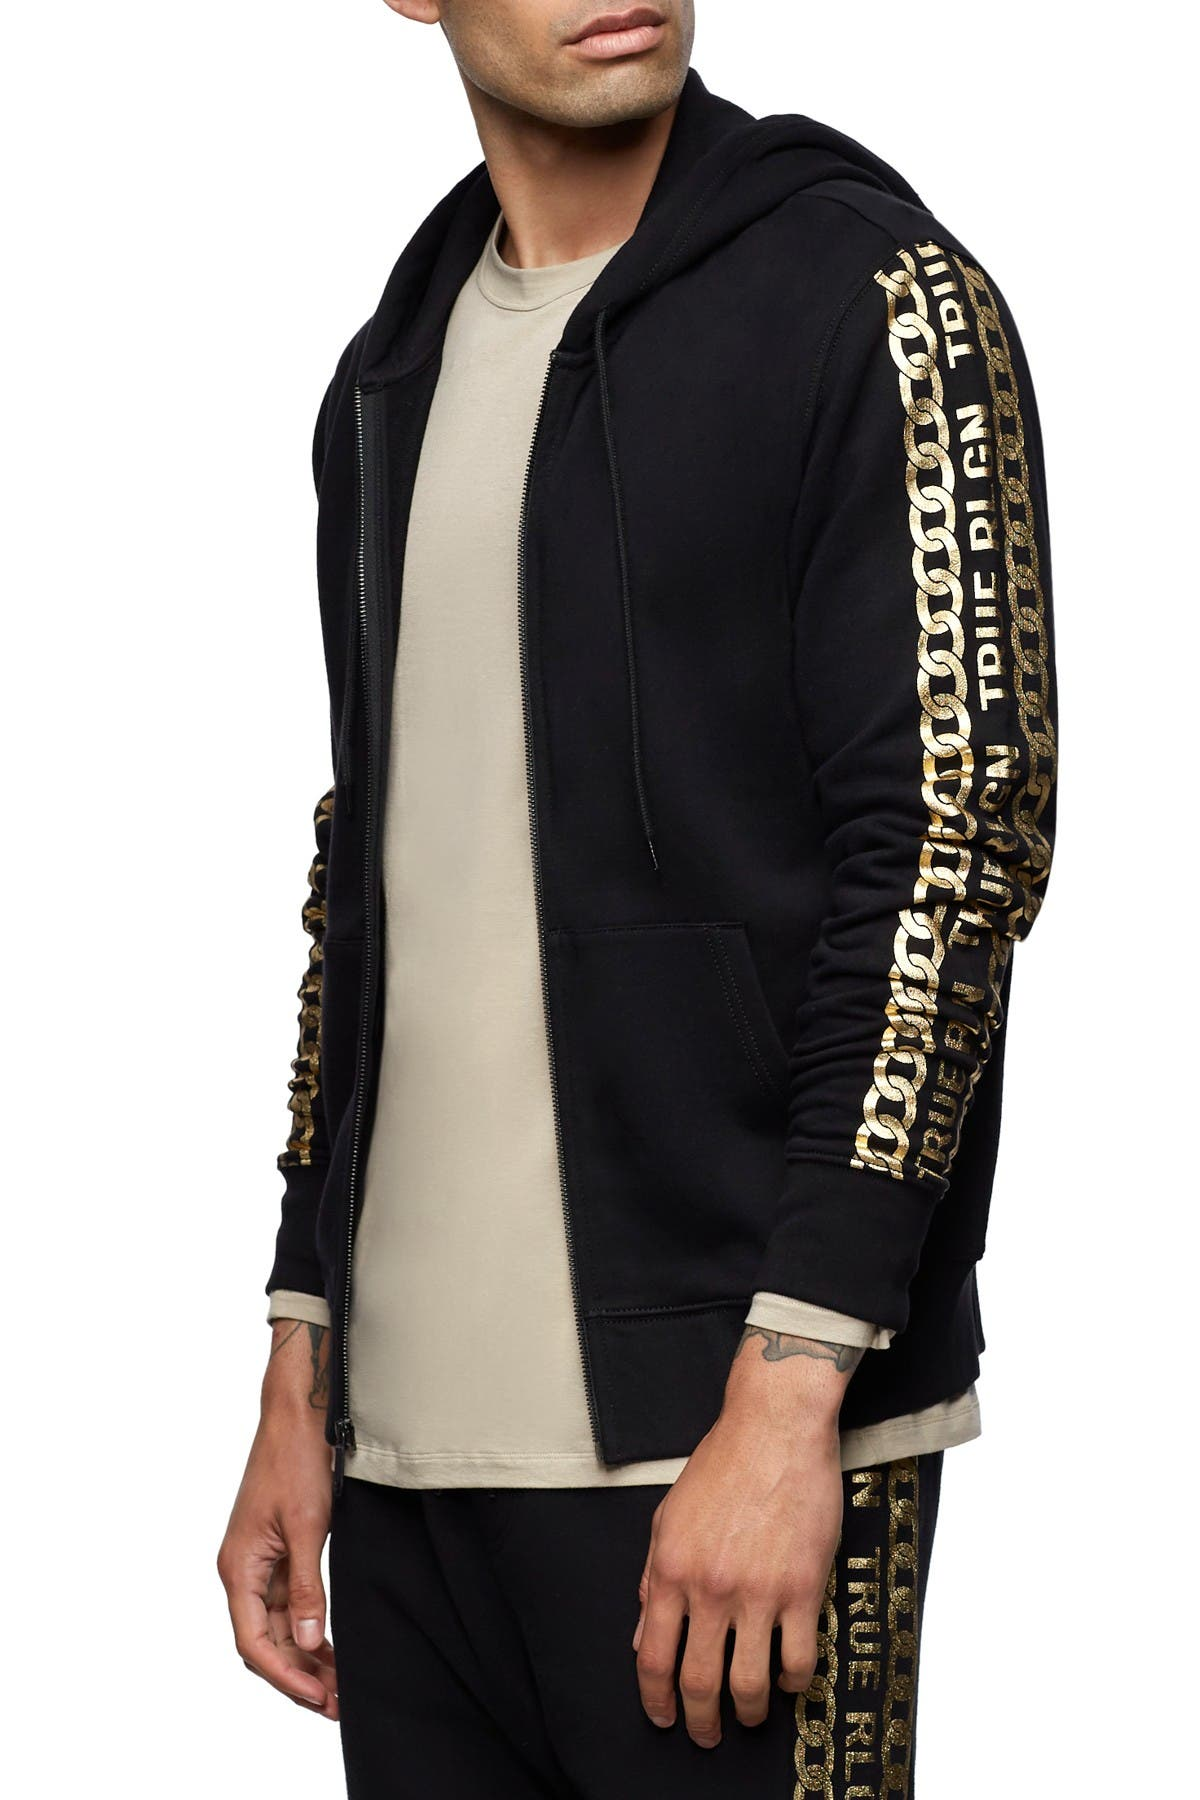 Image of True Religion Graphic Sleeve Zip Hoodie